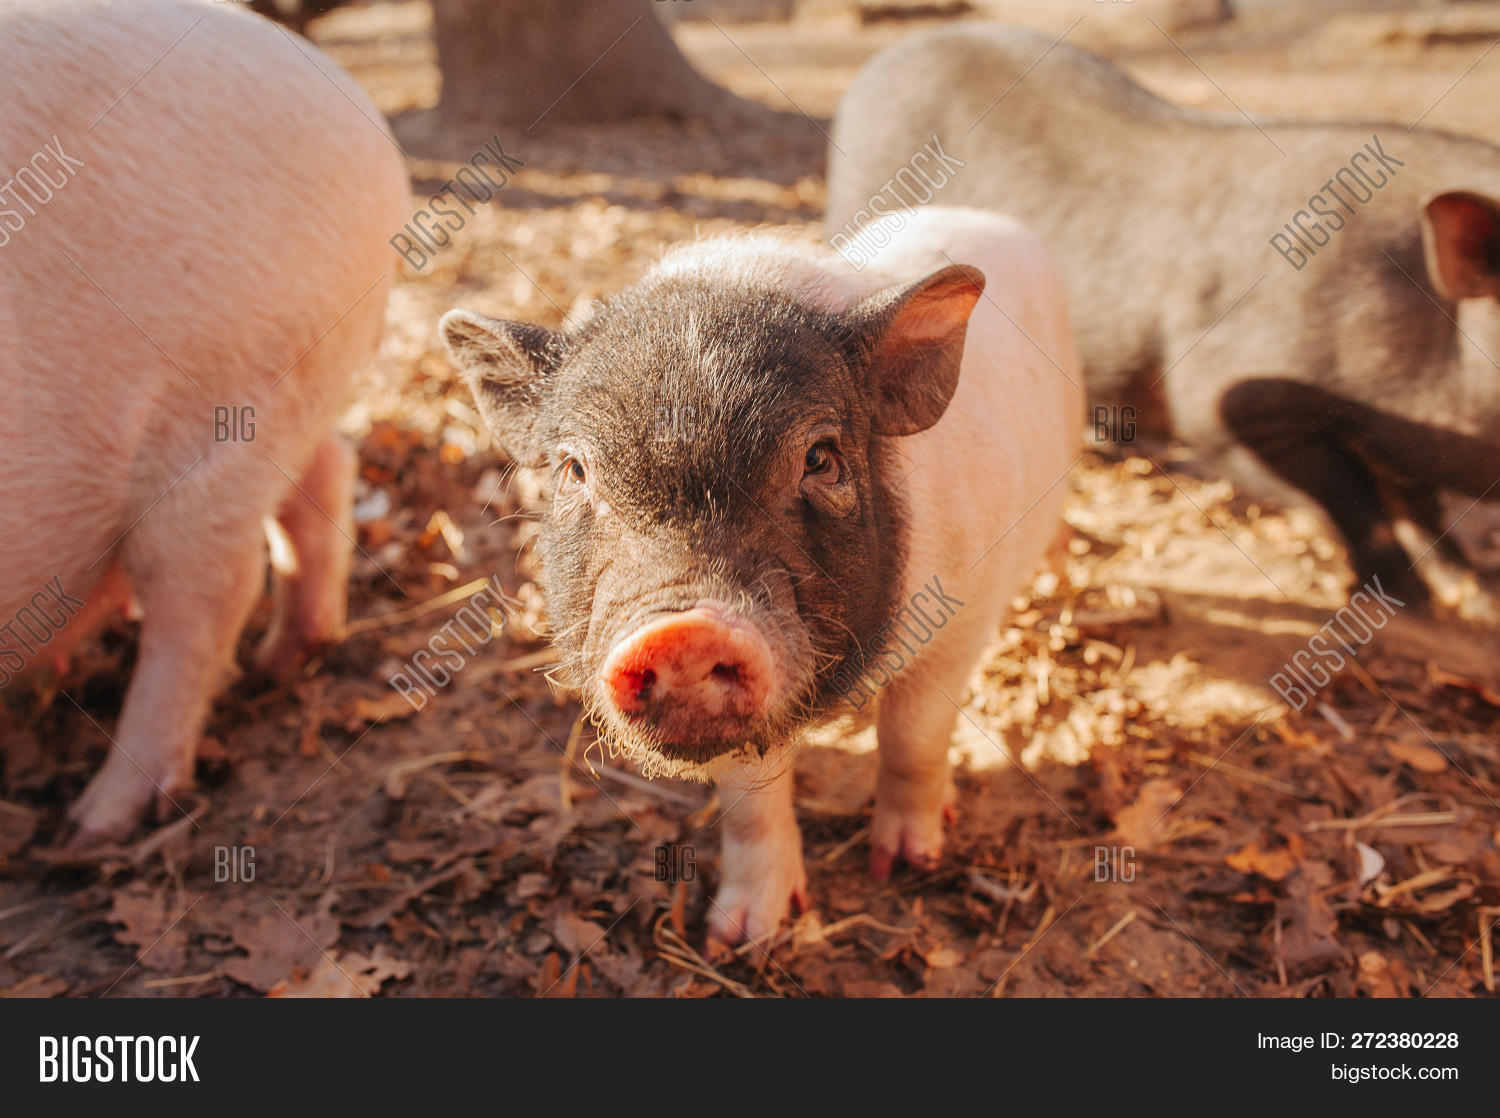 Small Piglet Waiting Image & Photo (Free Trial) | Bigstock